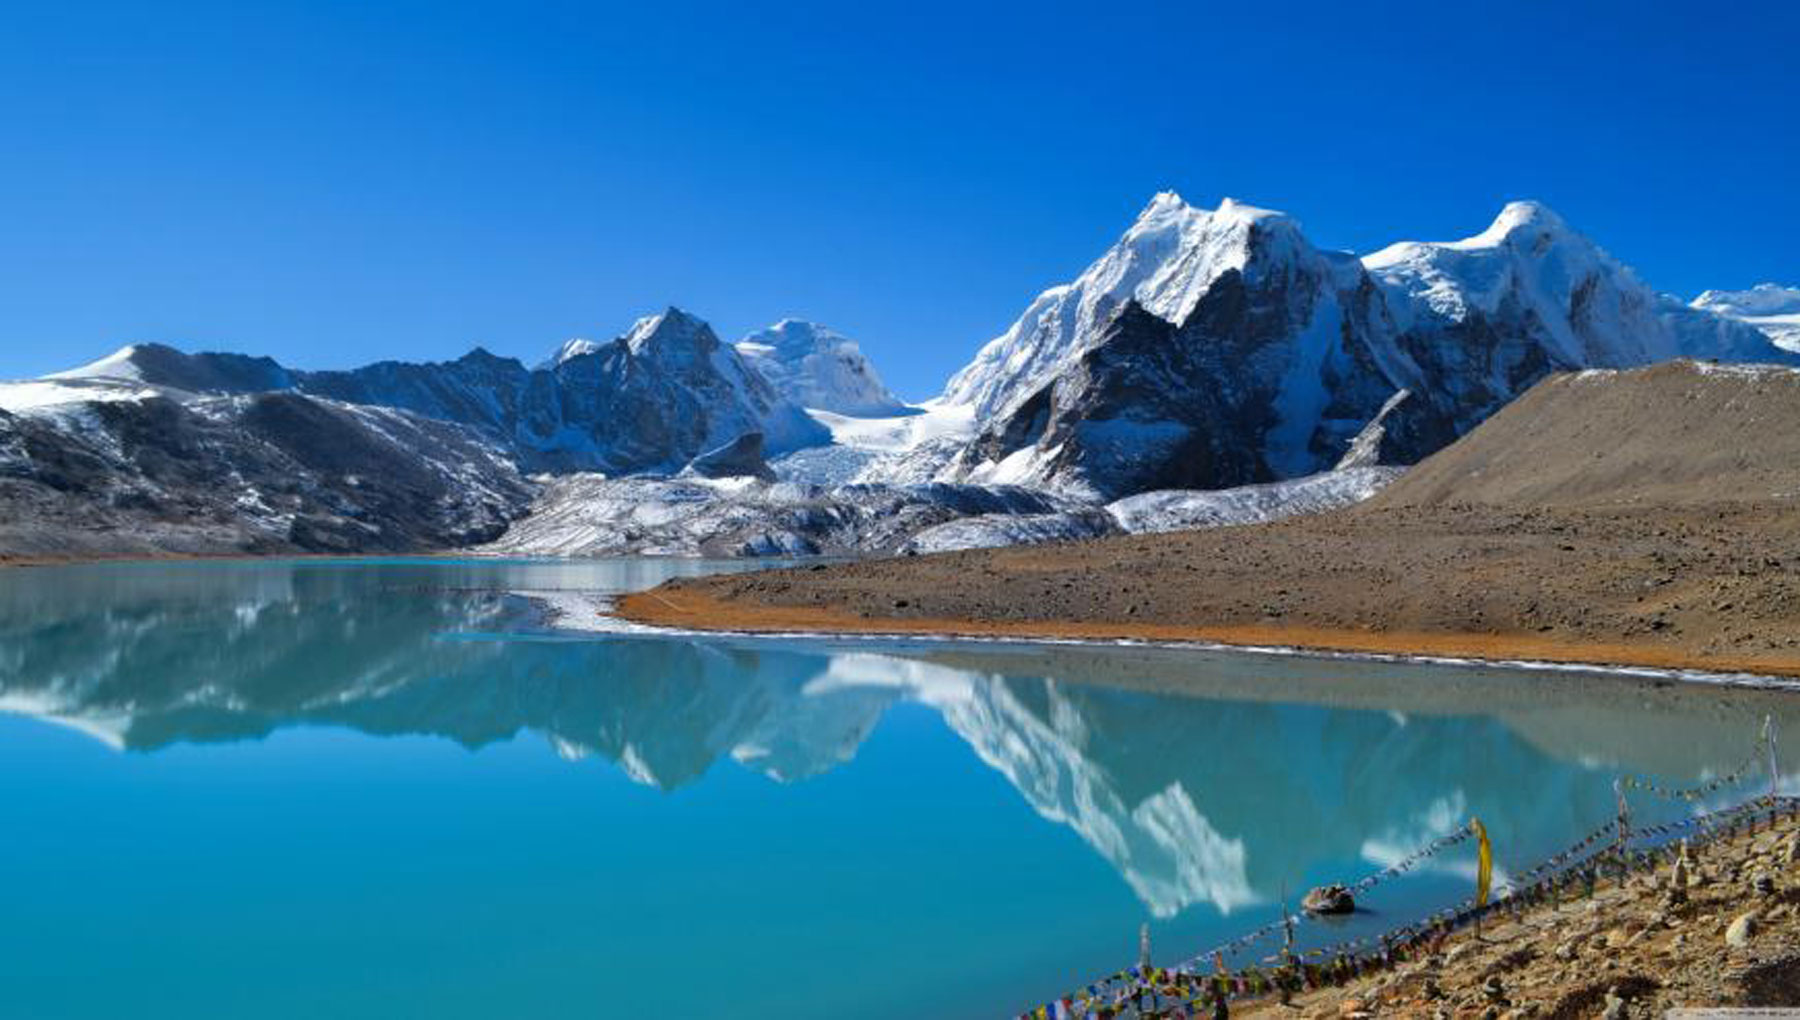 Everest Base Camp Trekking| Annapurna Trekking | Langtang  Trekking - Alpine Club of Himalaya